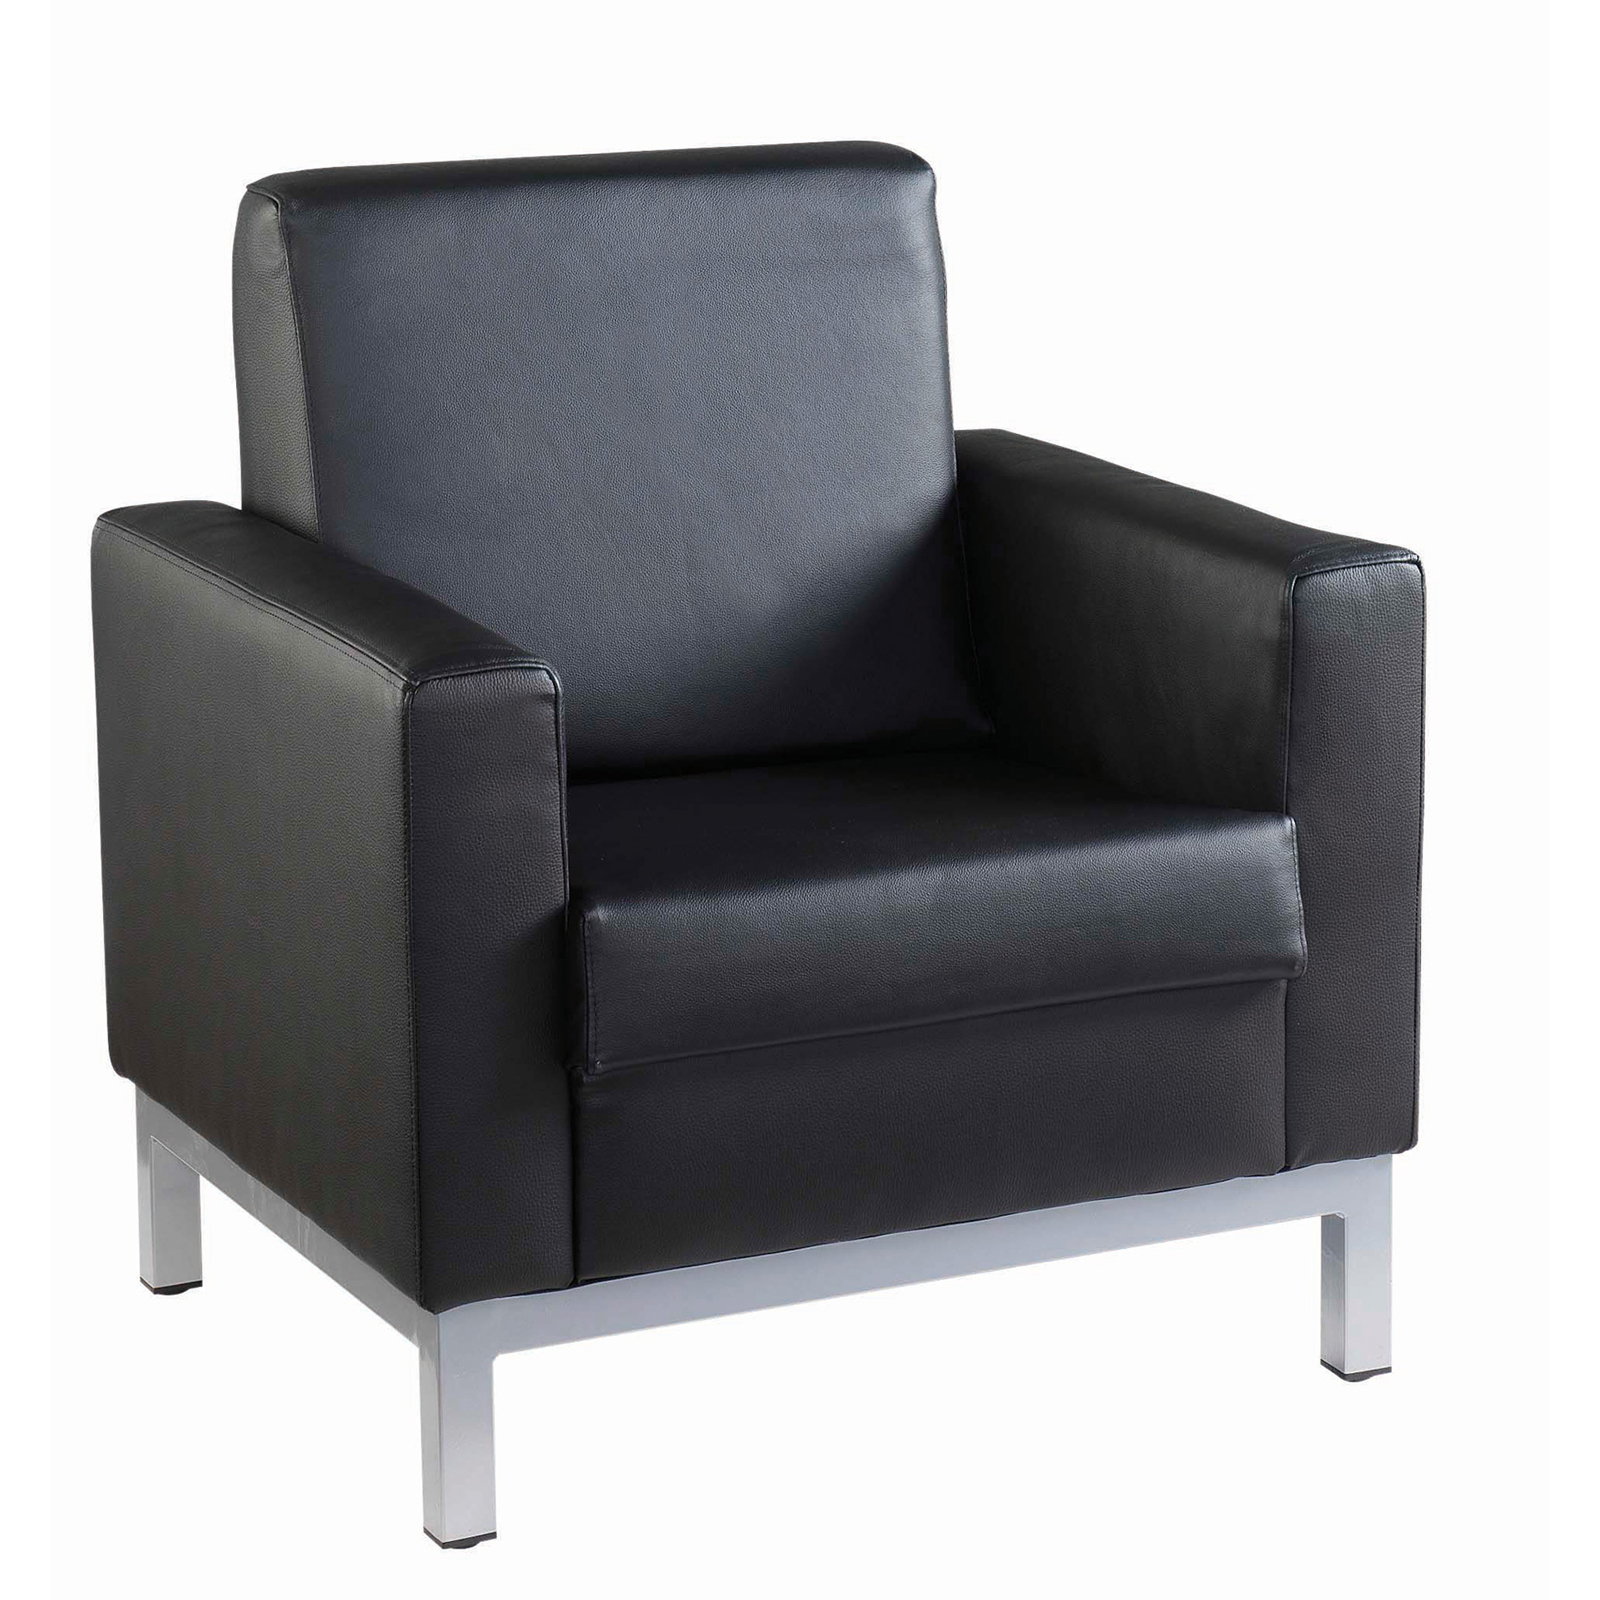 Reception Chairs Helsinki square back reception single tub chair 800mm wide - black leather faced